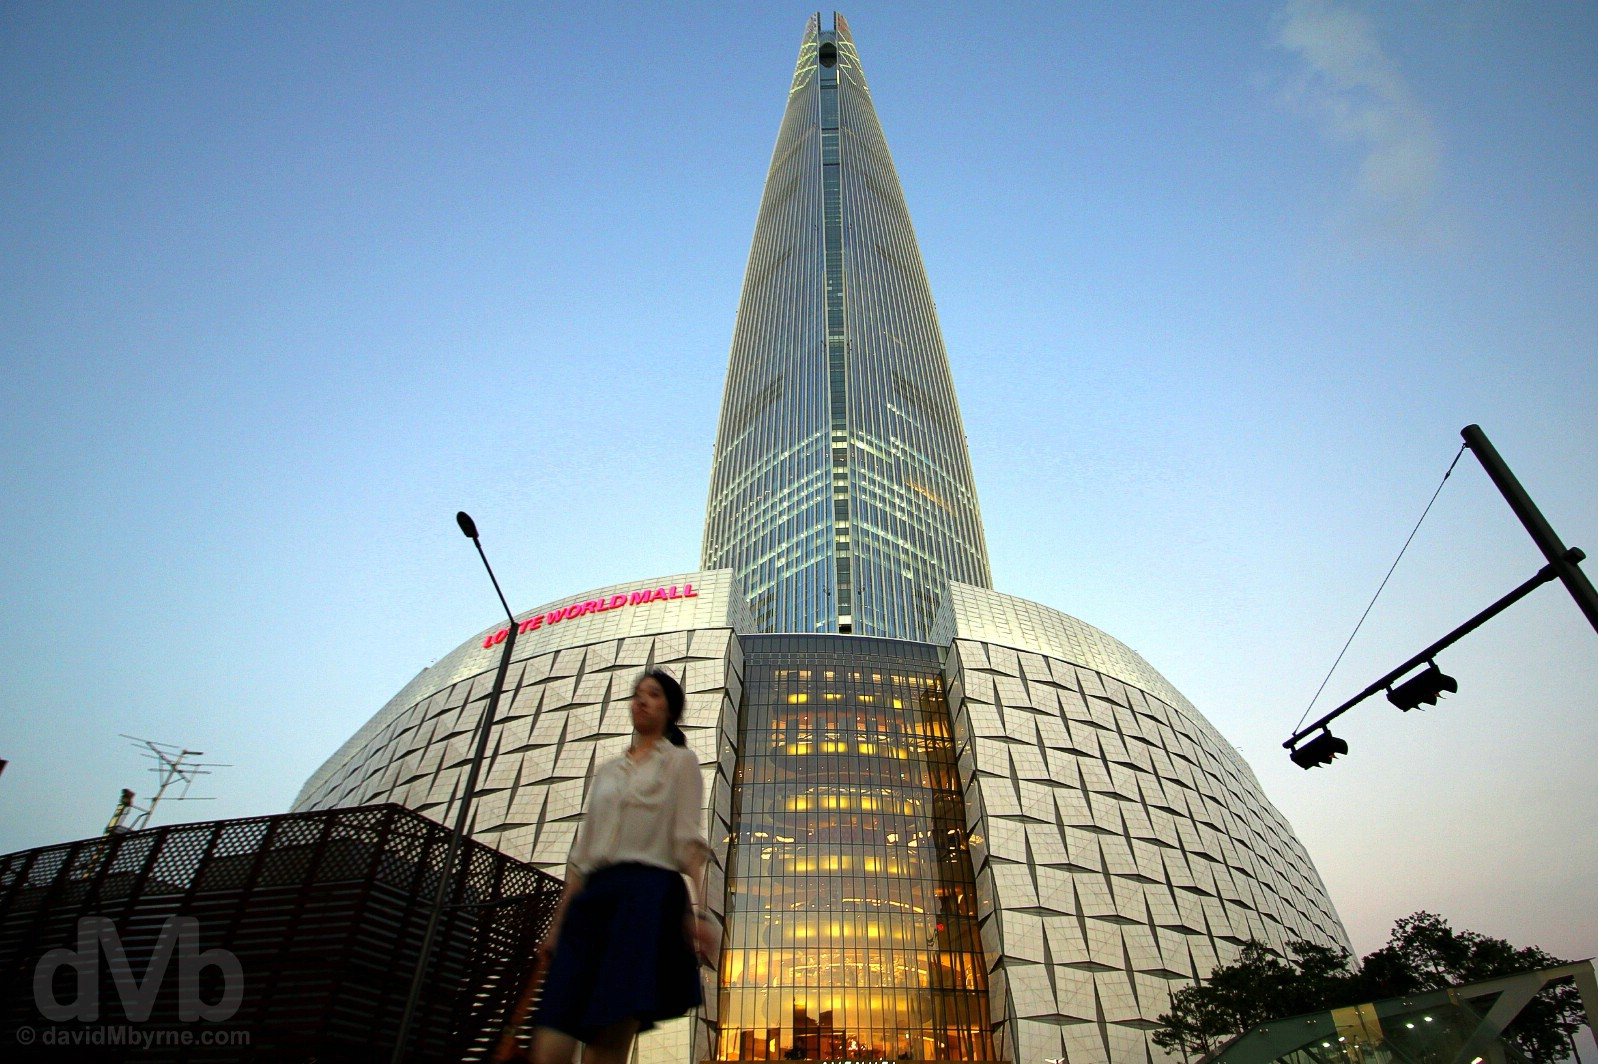 Dusk at the base of Lotte World Tower in Jamsil, Seoul, South Korea. July 25, 2017.